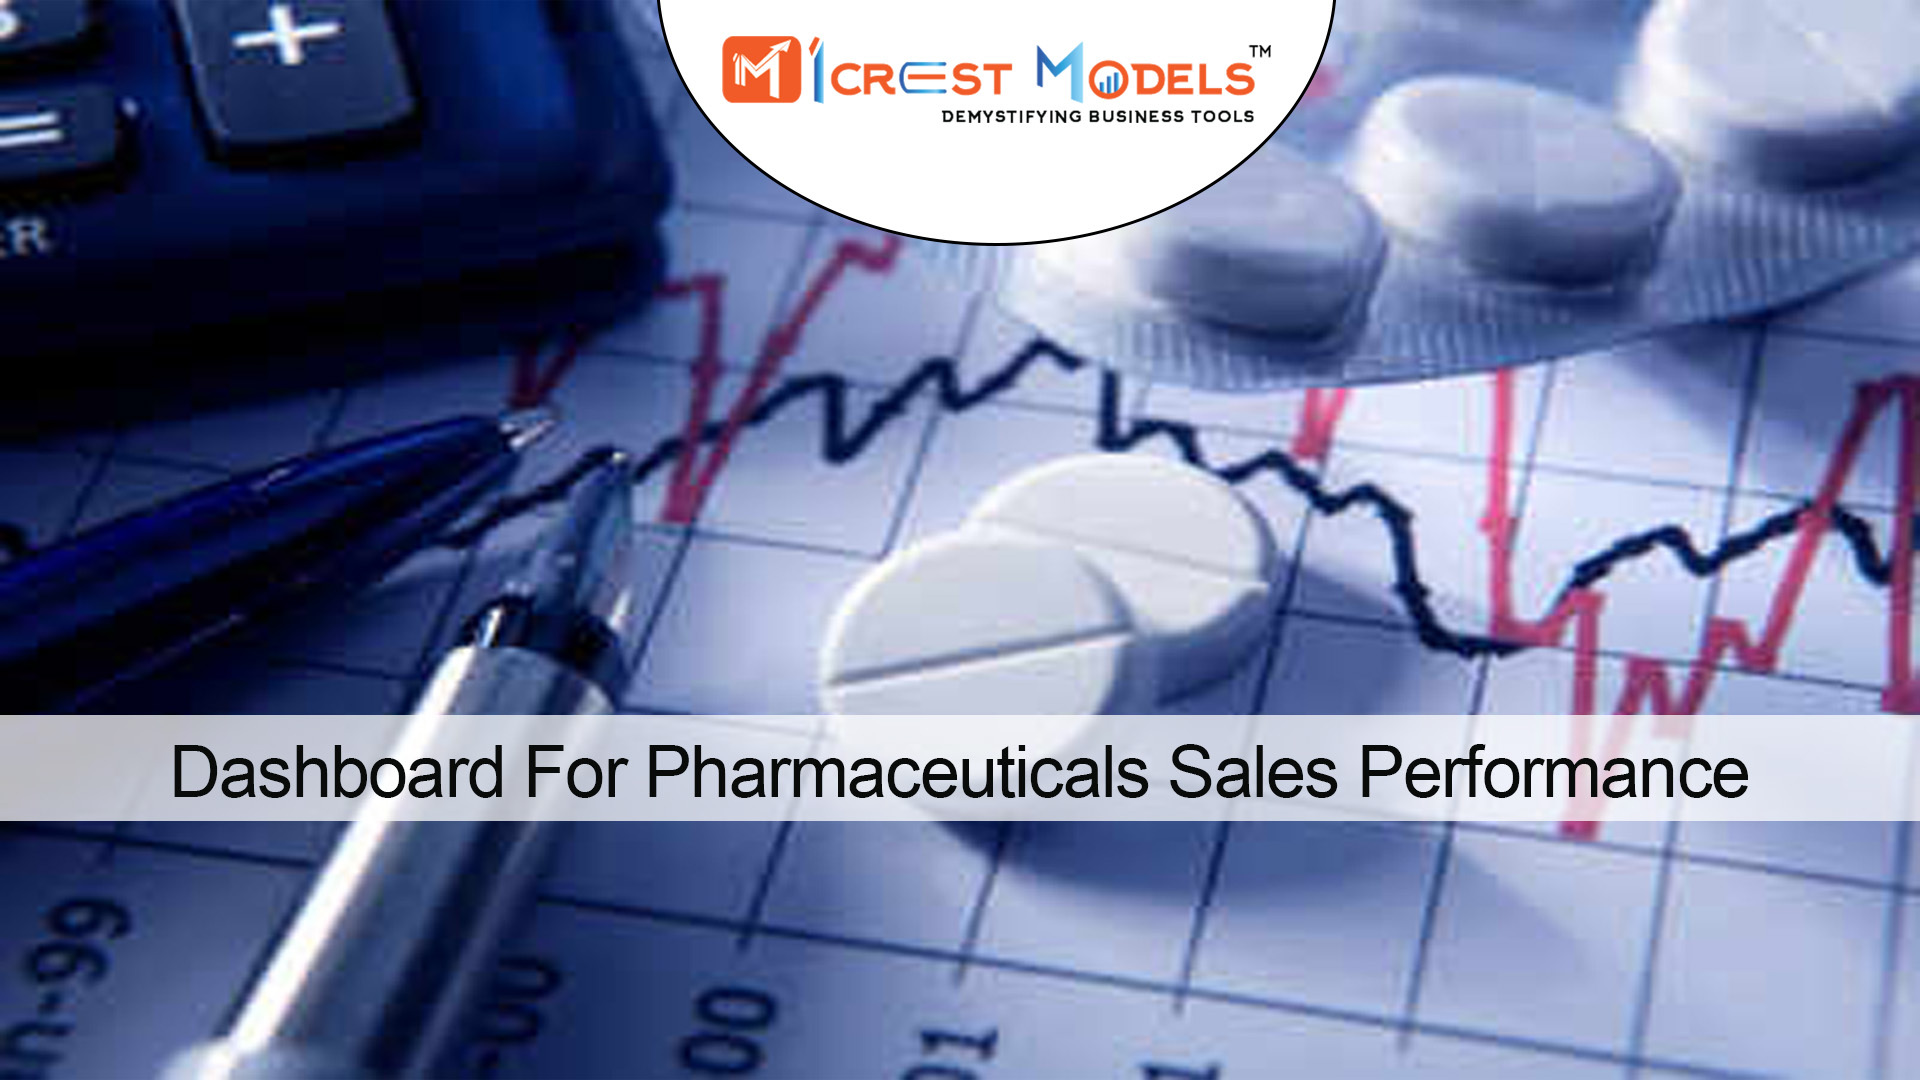 Dashboard For Pharmaceuticals Sales Performance